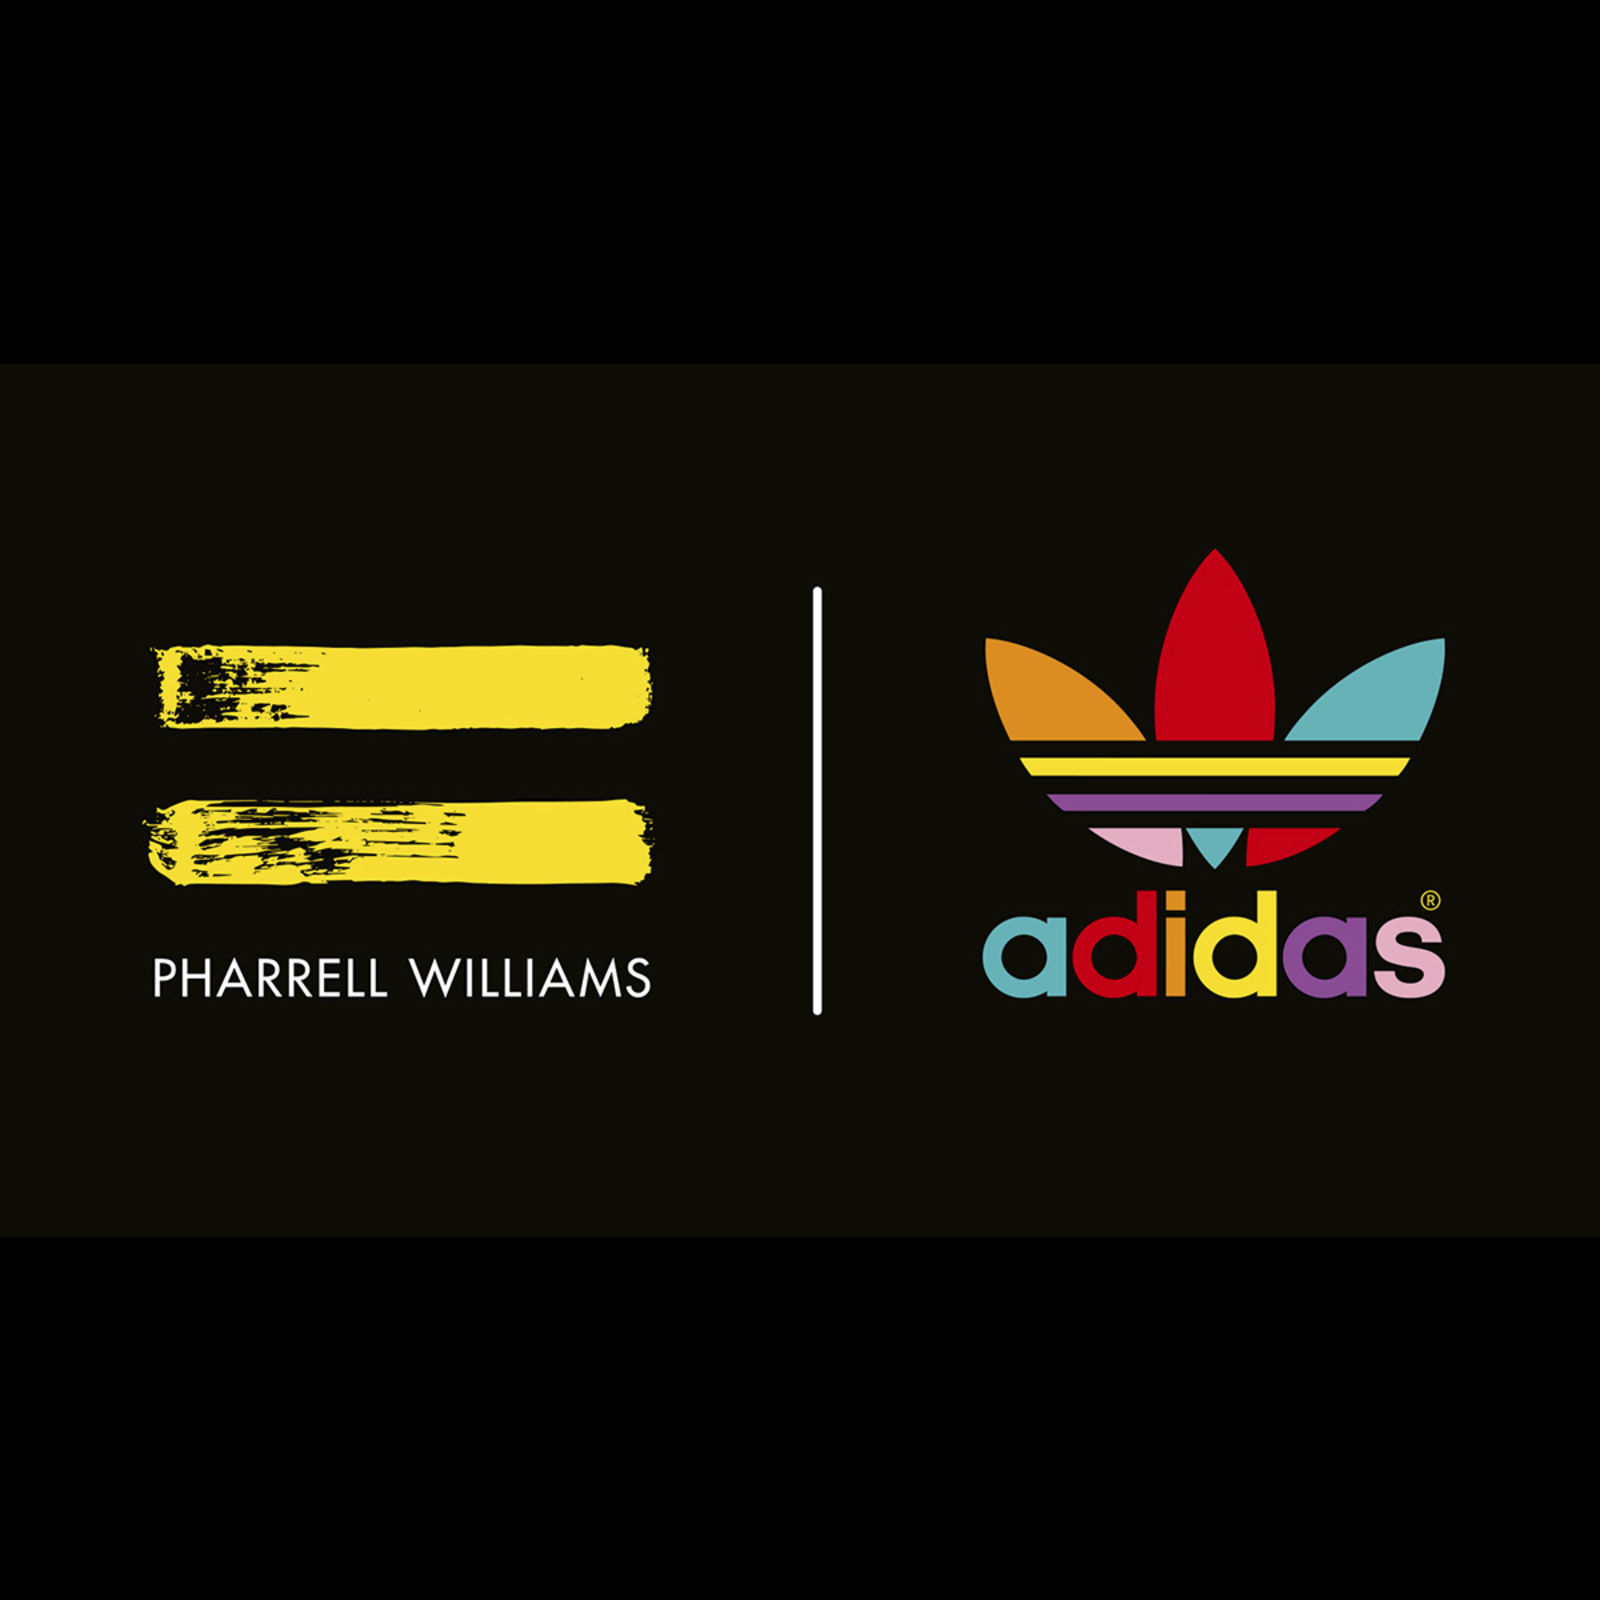 adidas x PHARRELL WILLIAMS (Image 1)